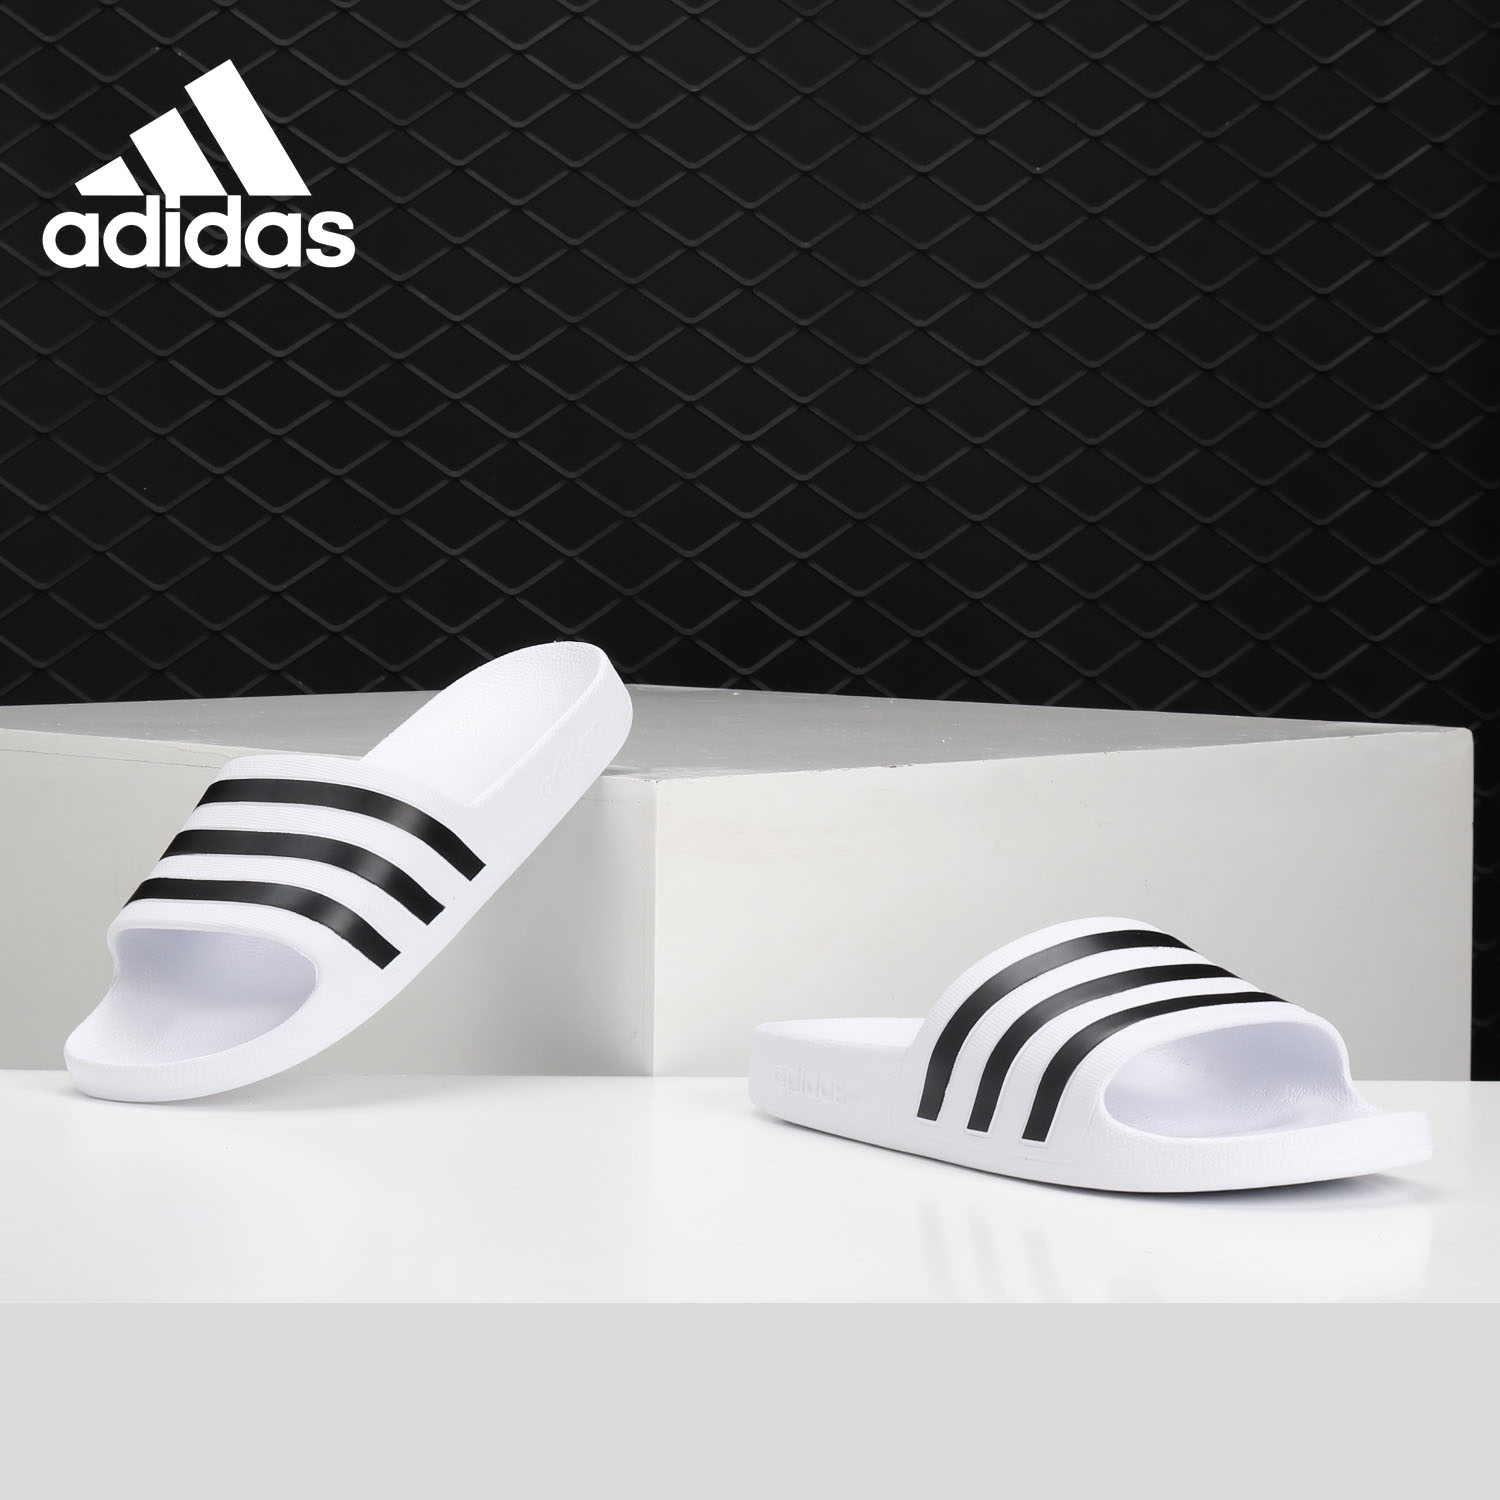 Adidas F50 Unisex White Green Shoes Model:A203,Adidas shoes